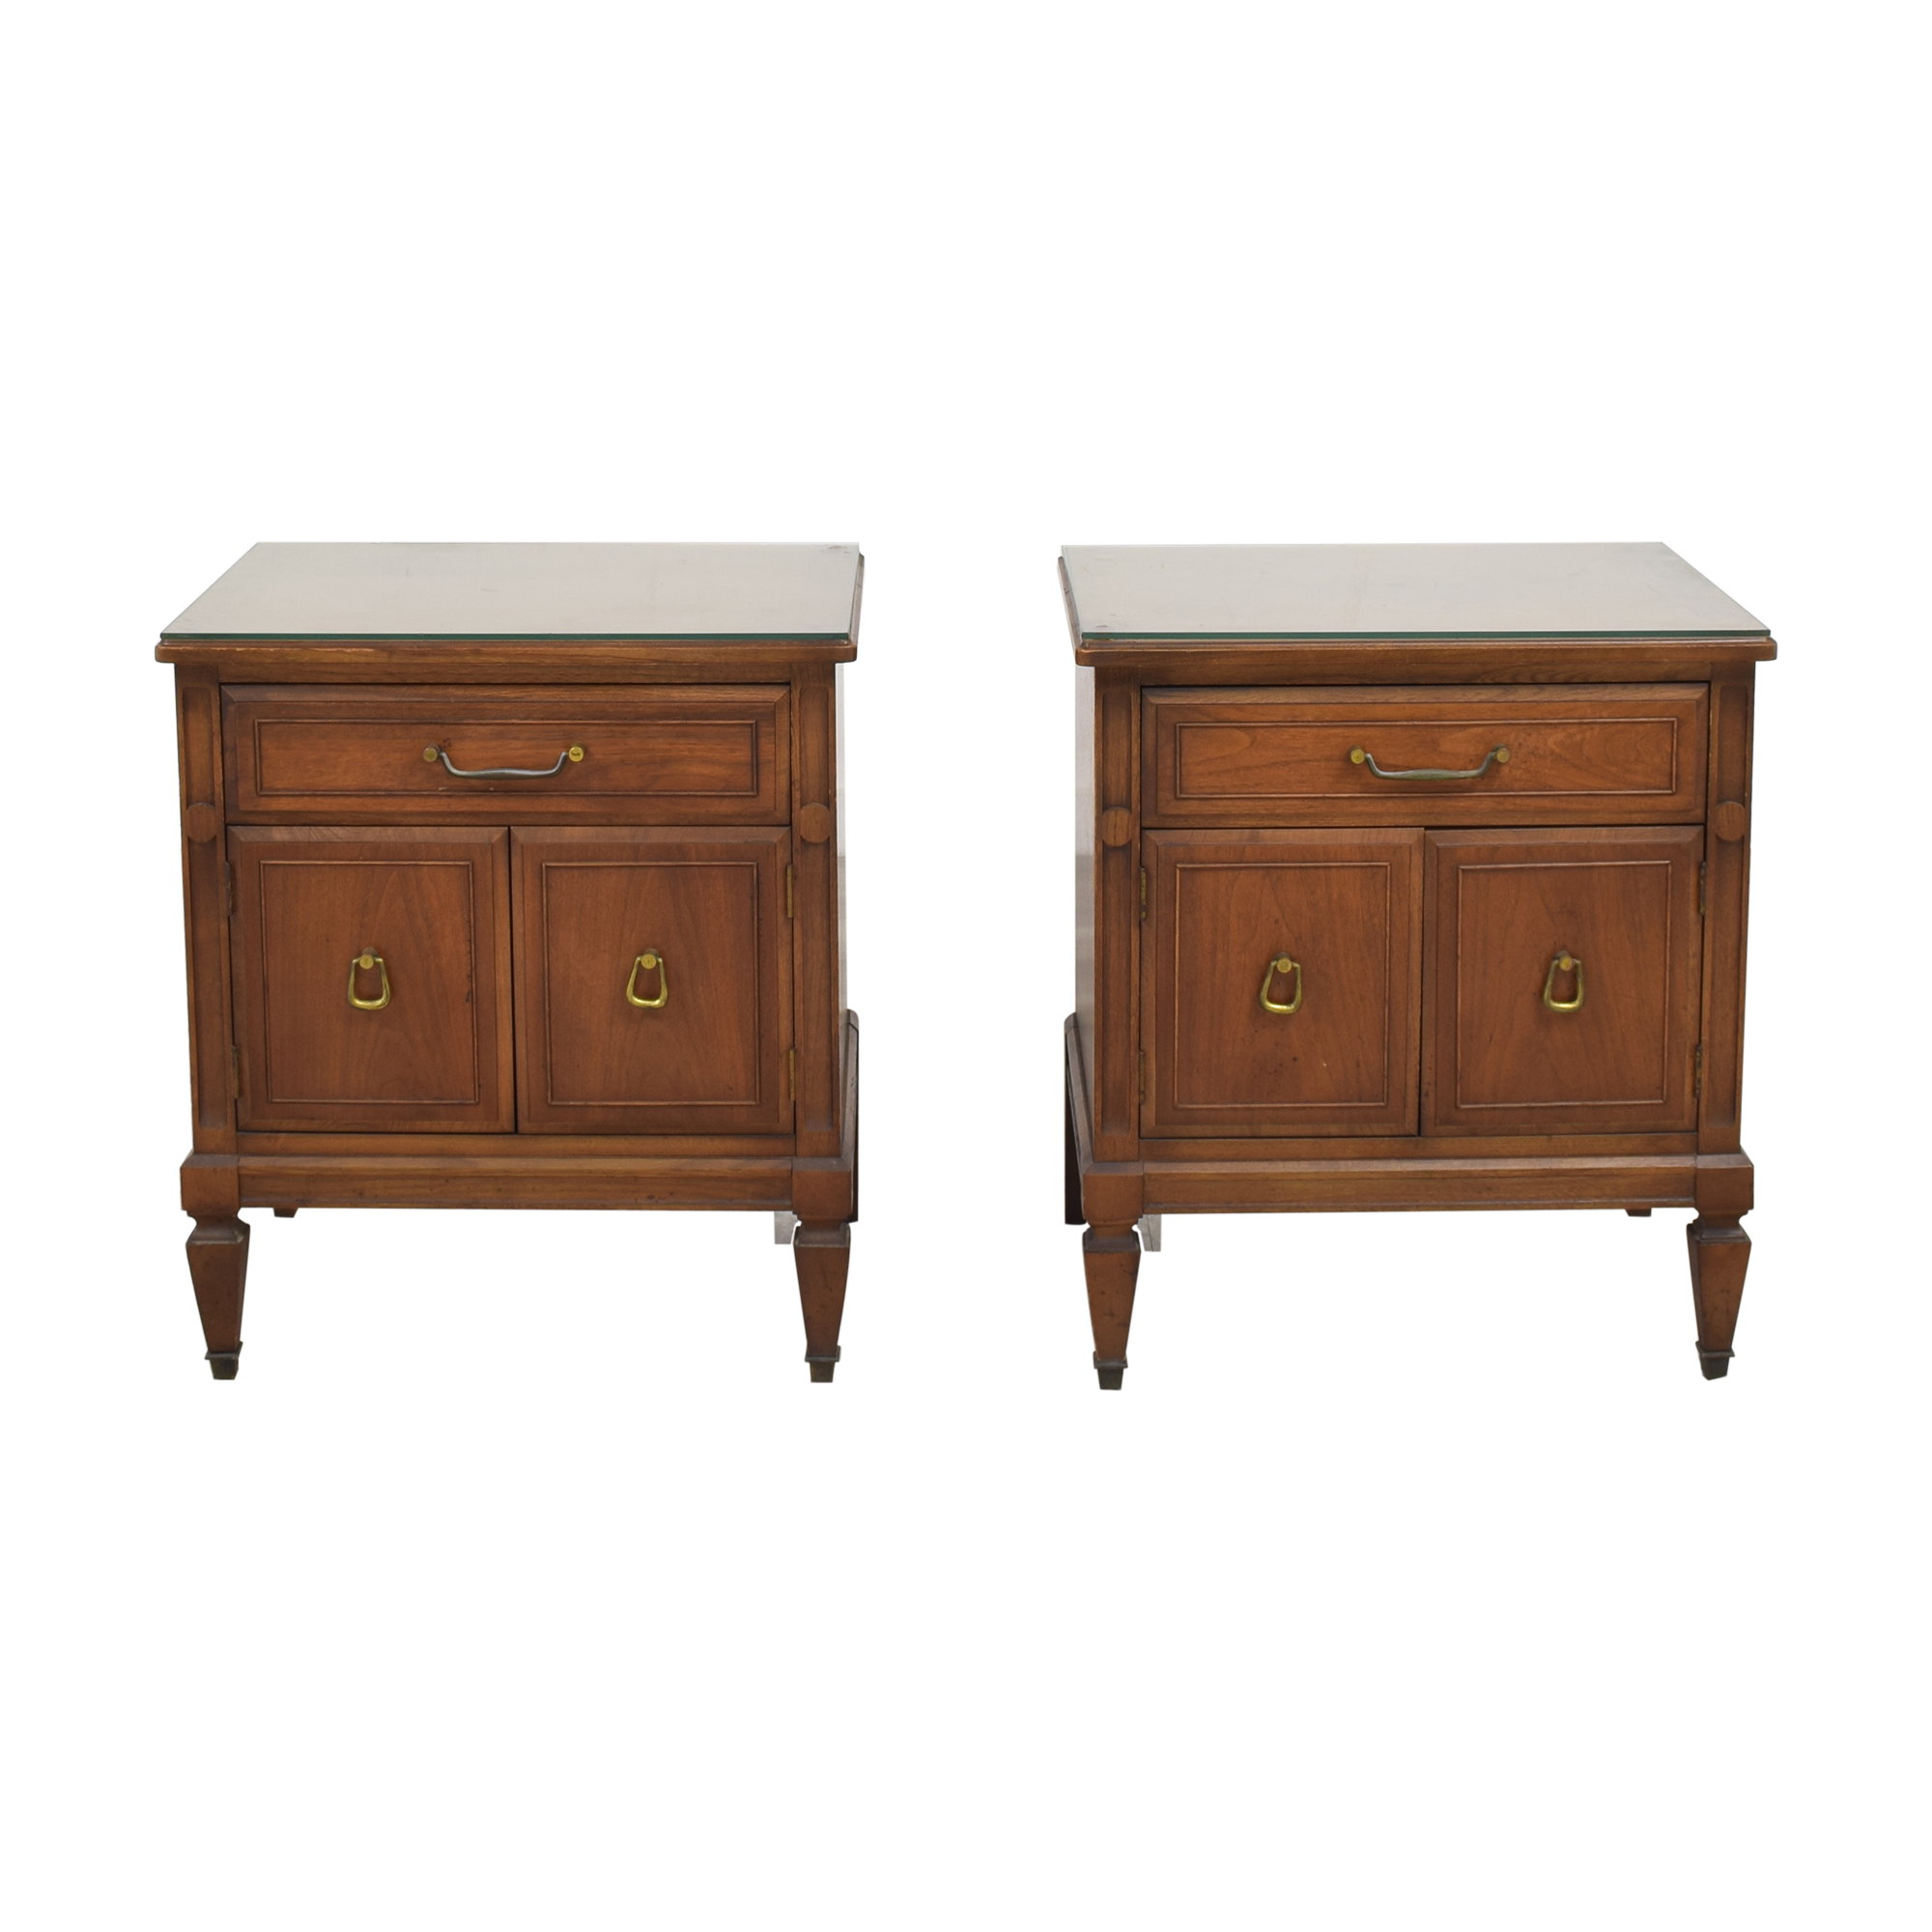 Huntley Huntley Vintage Single Drawer Nightstands discount